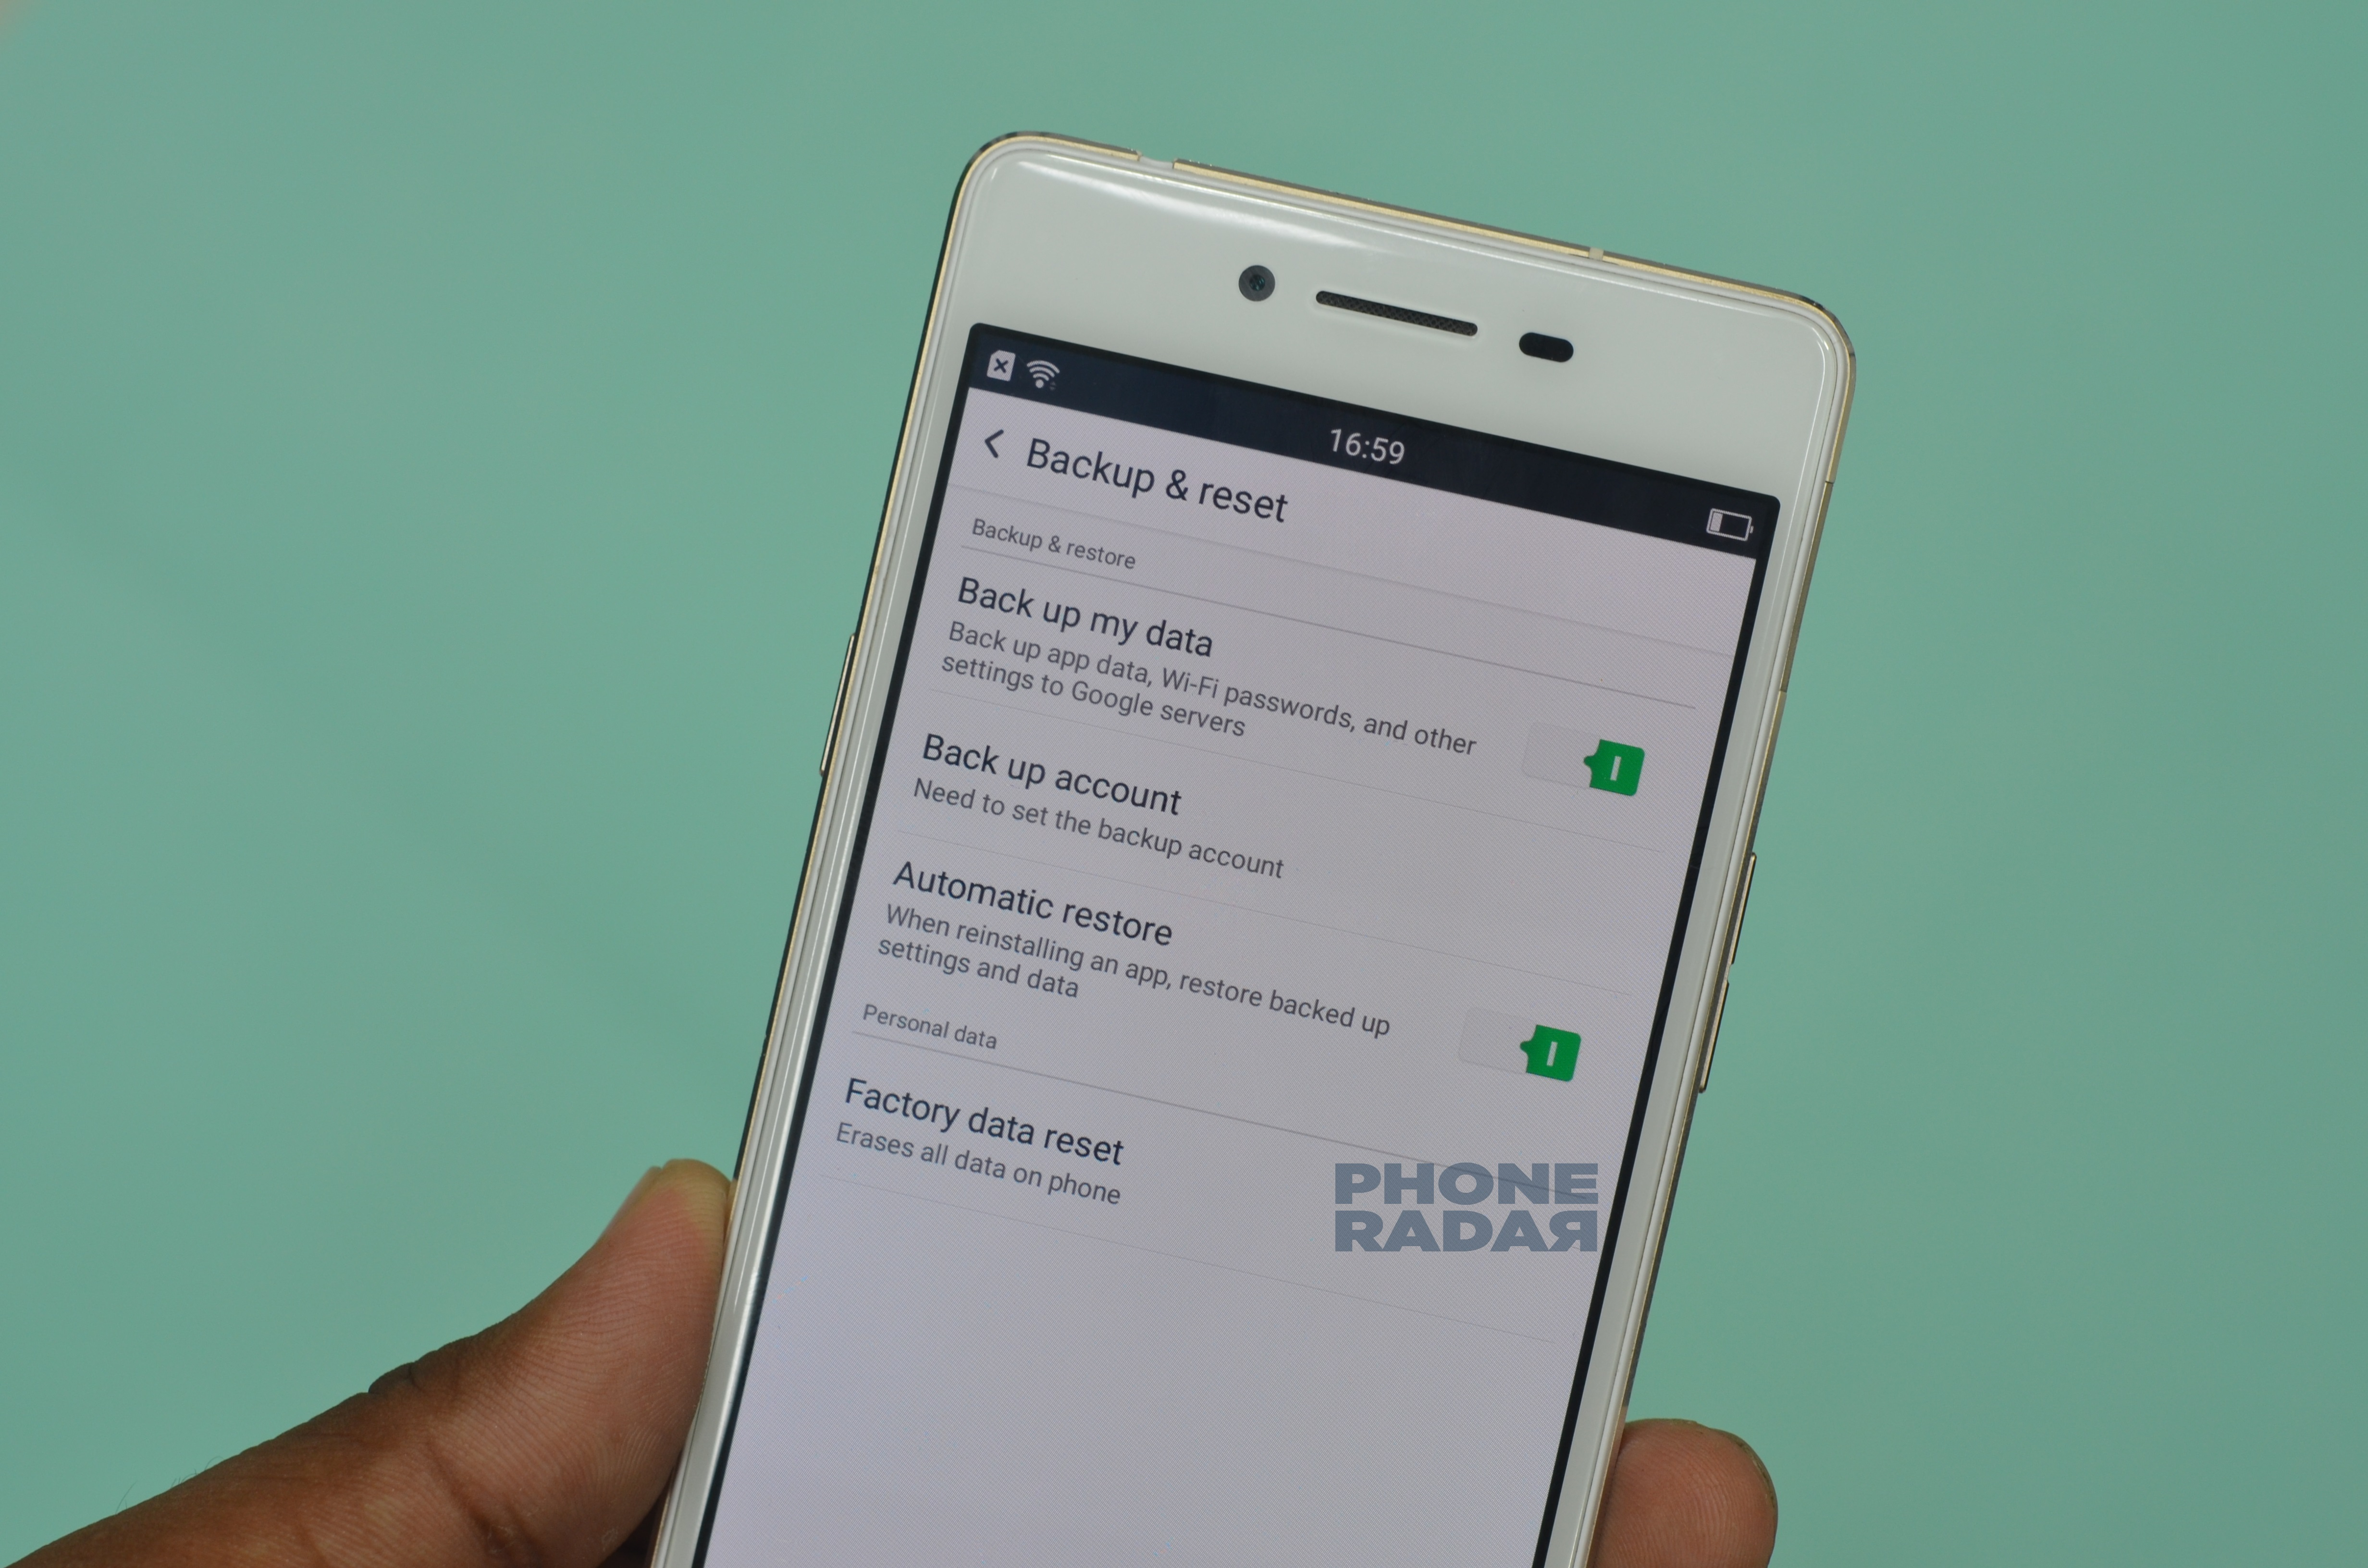 Oppo R7 Lite Backup and reset